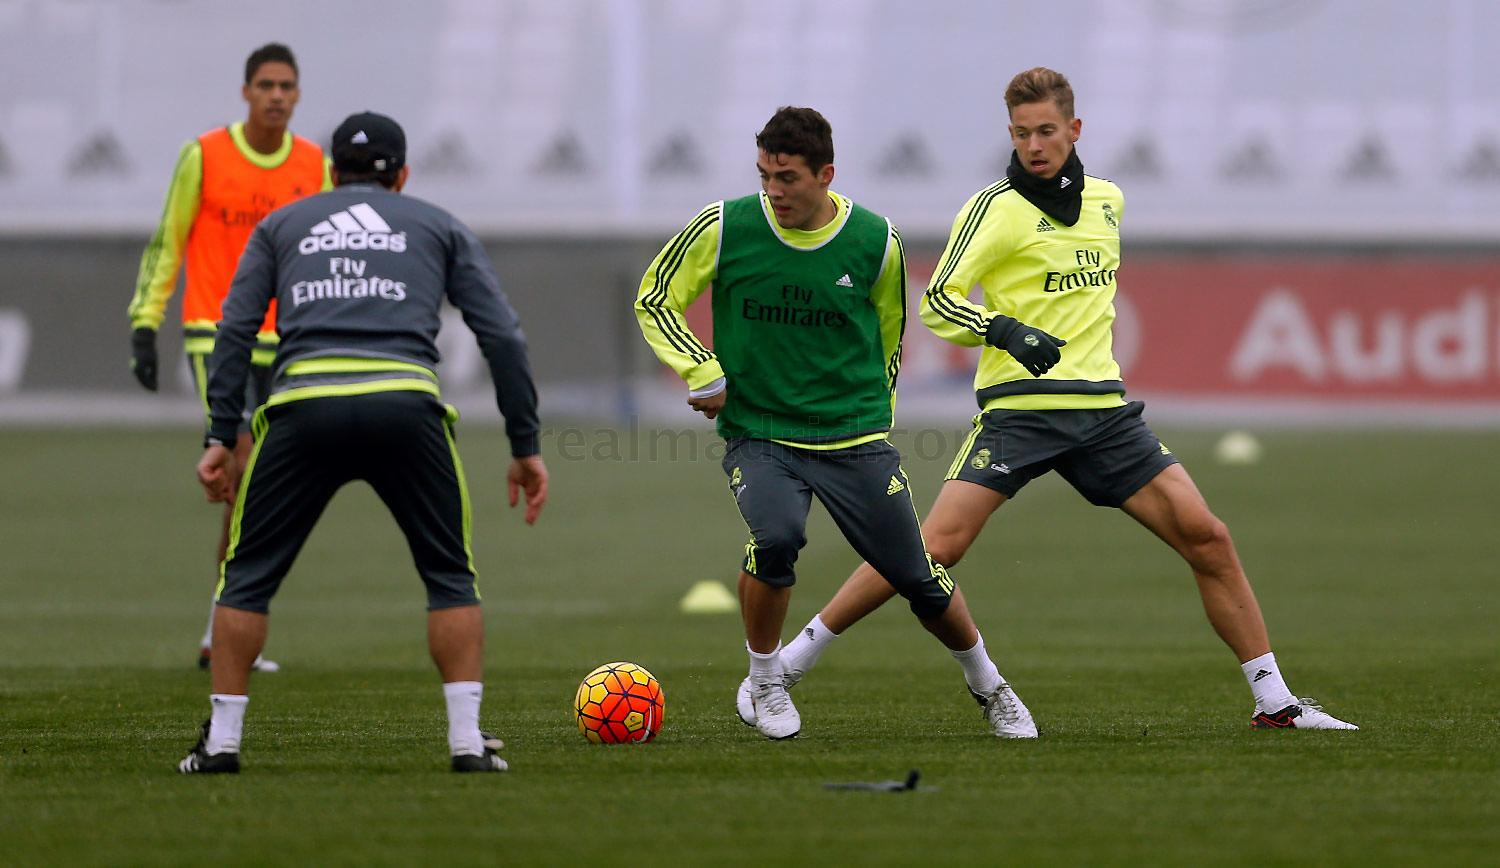 Real Madrid - Entrenamiento del Real Madrid - 31-12-2015